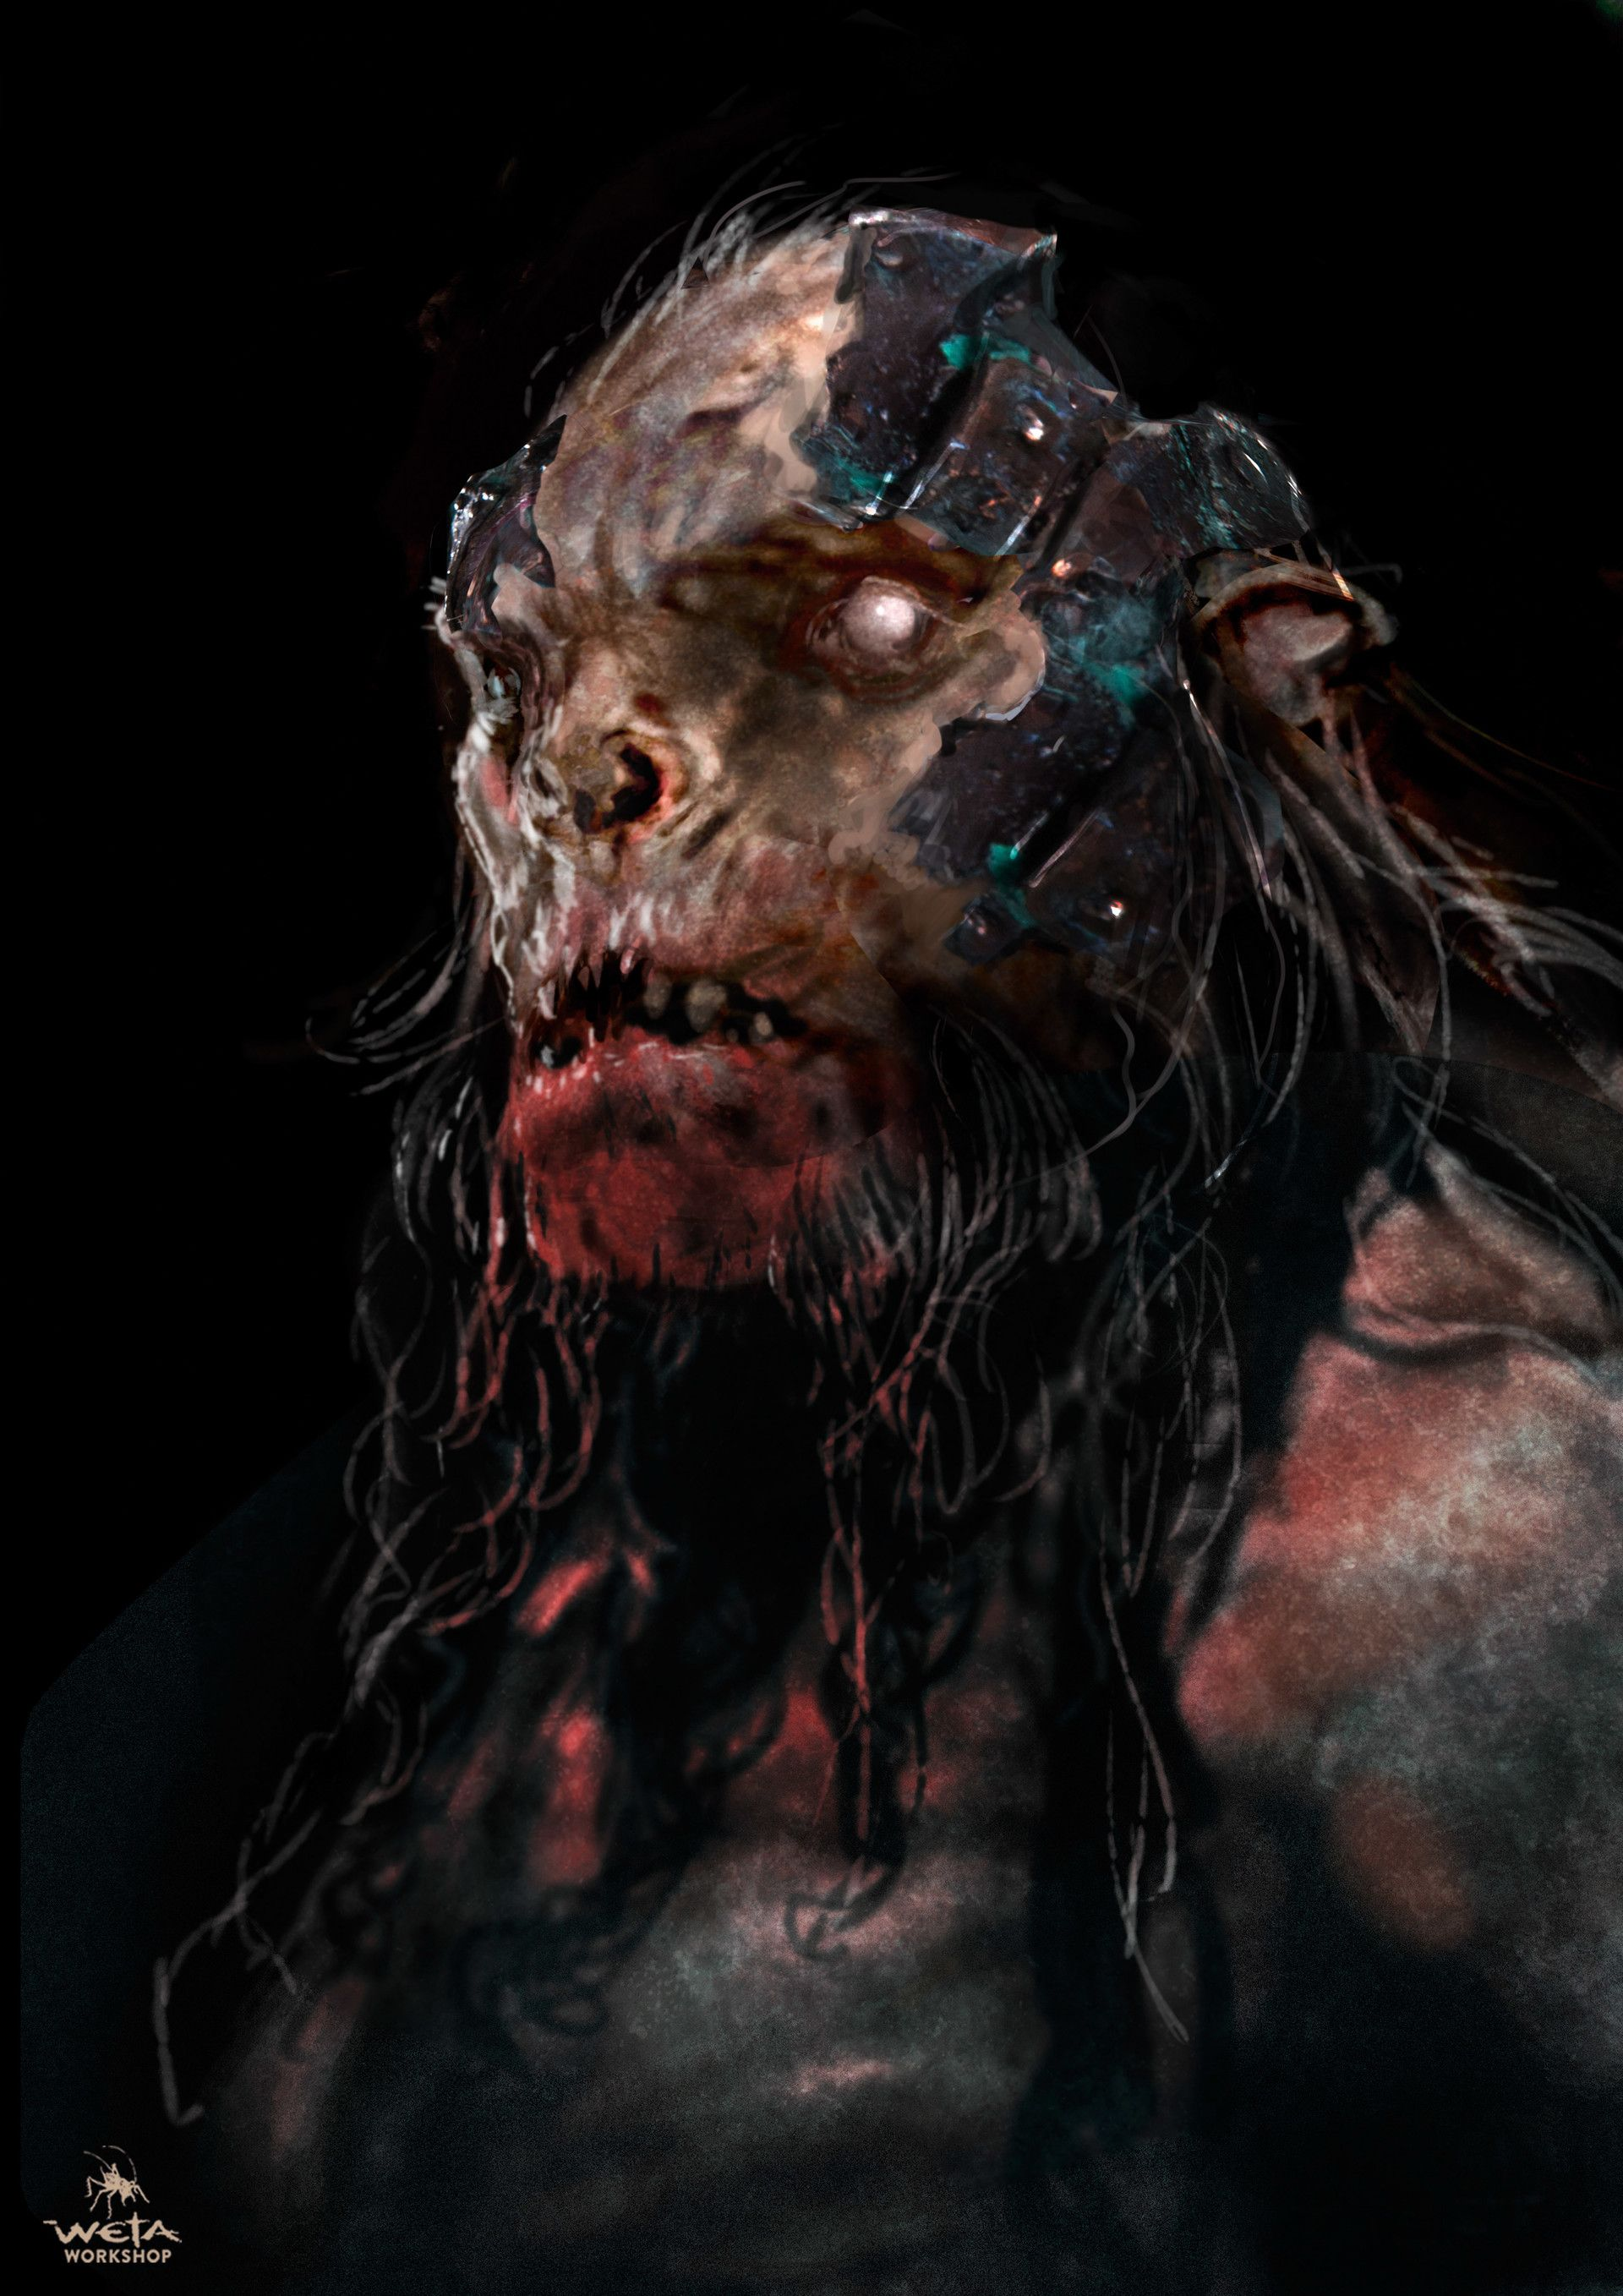 ArtStation - The Hobbit - Battle of Five Armies Hero Orcs, WETA WORKSHOP DESIGN STUDIO